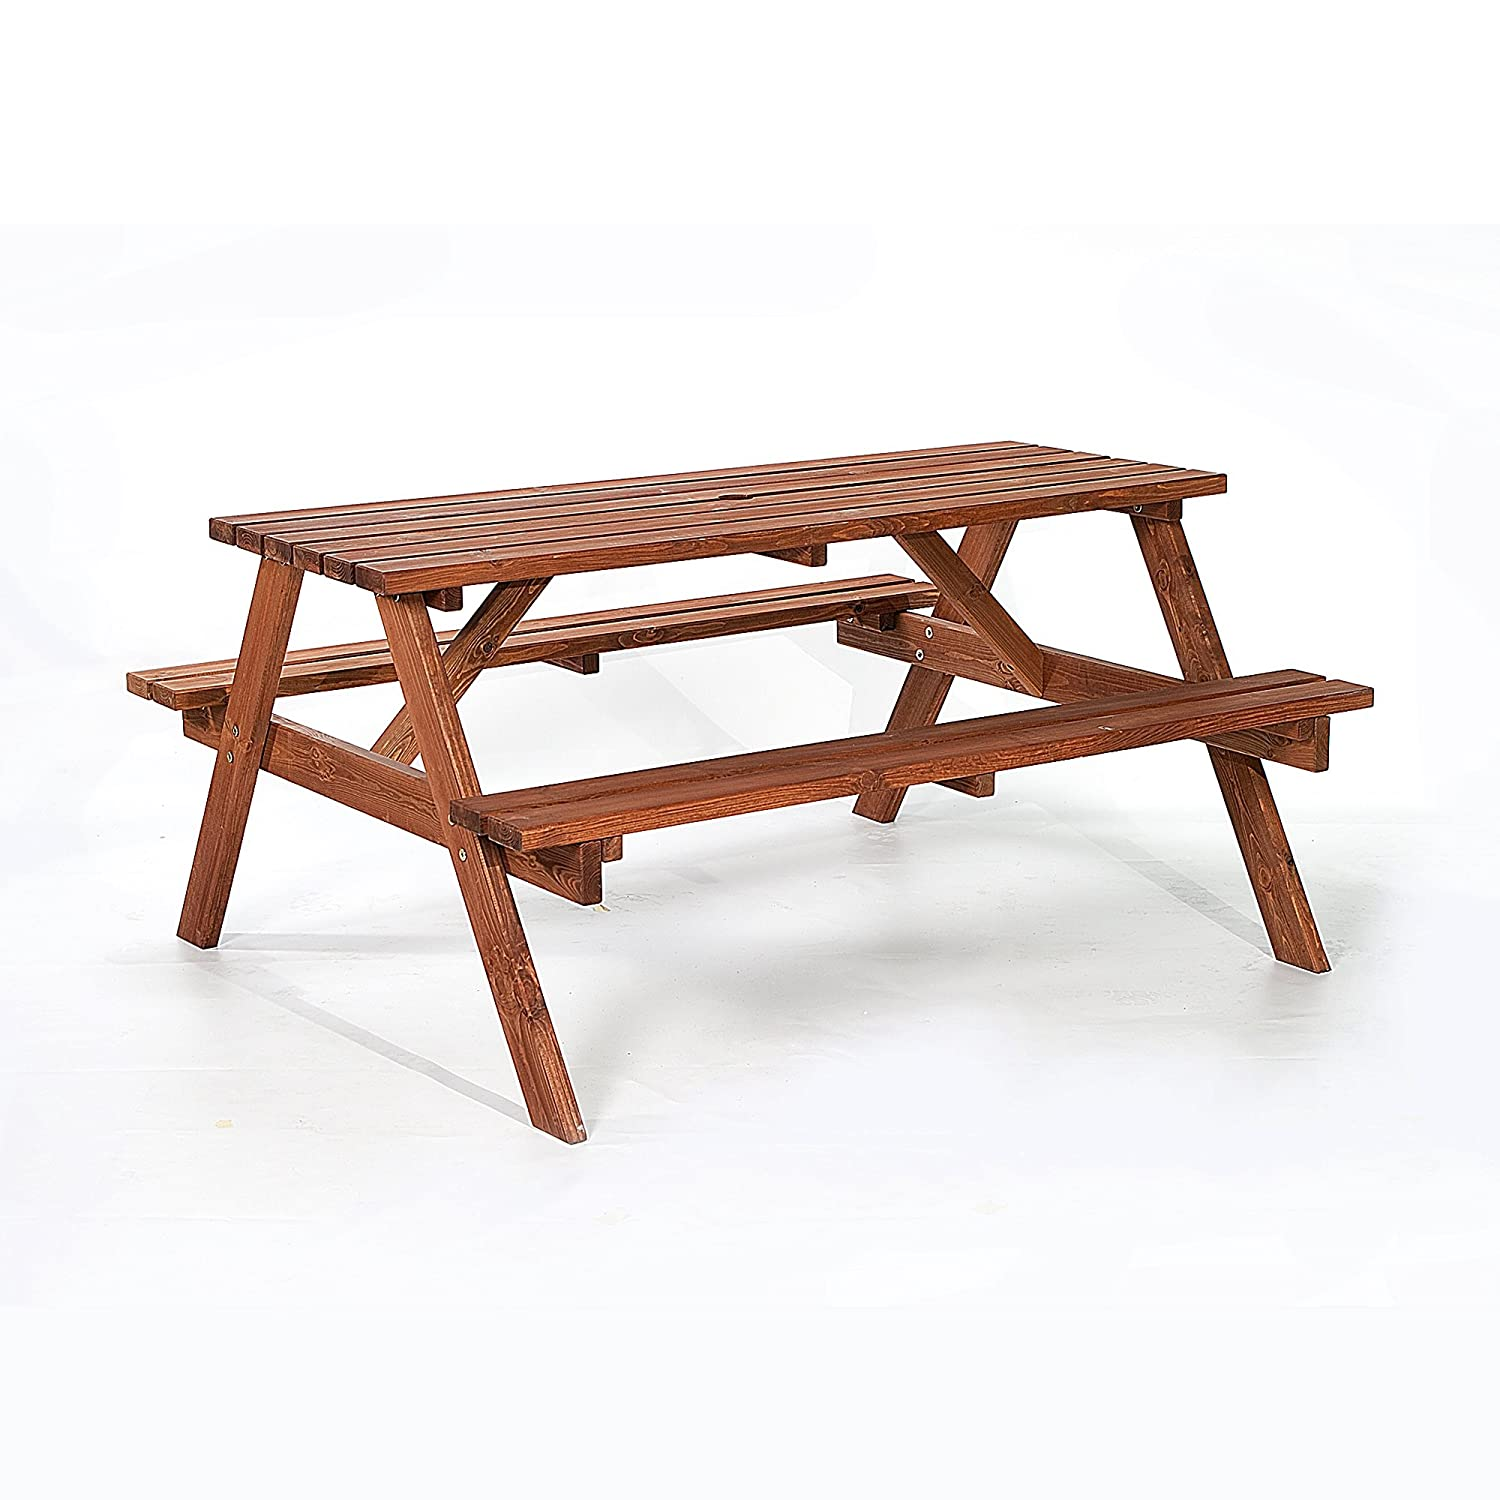 BrackenStyle Brown Picnic Pub Bench 6 Seater Wooden Garden Patio Table Thick Timbers Dip Treated